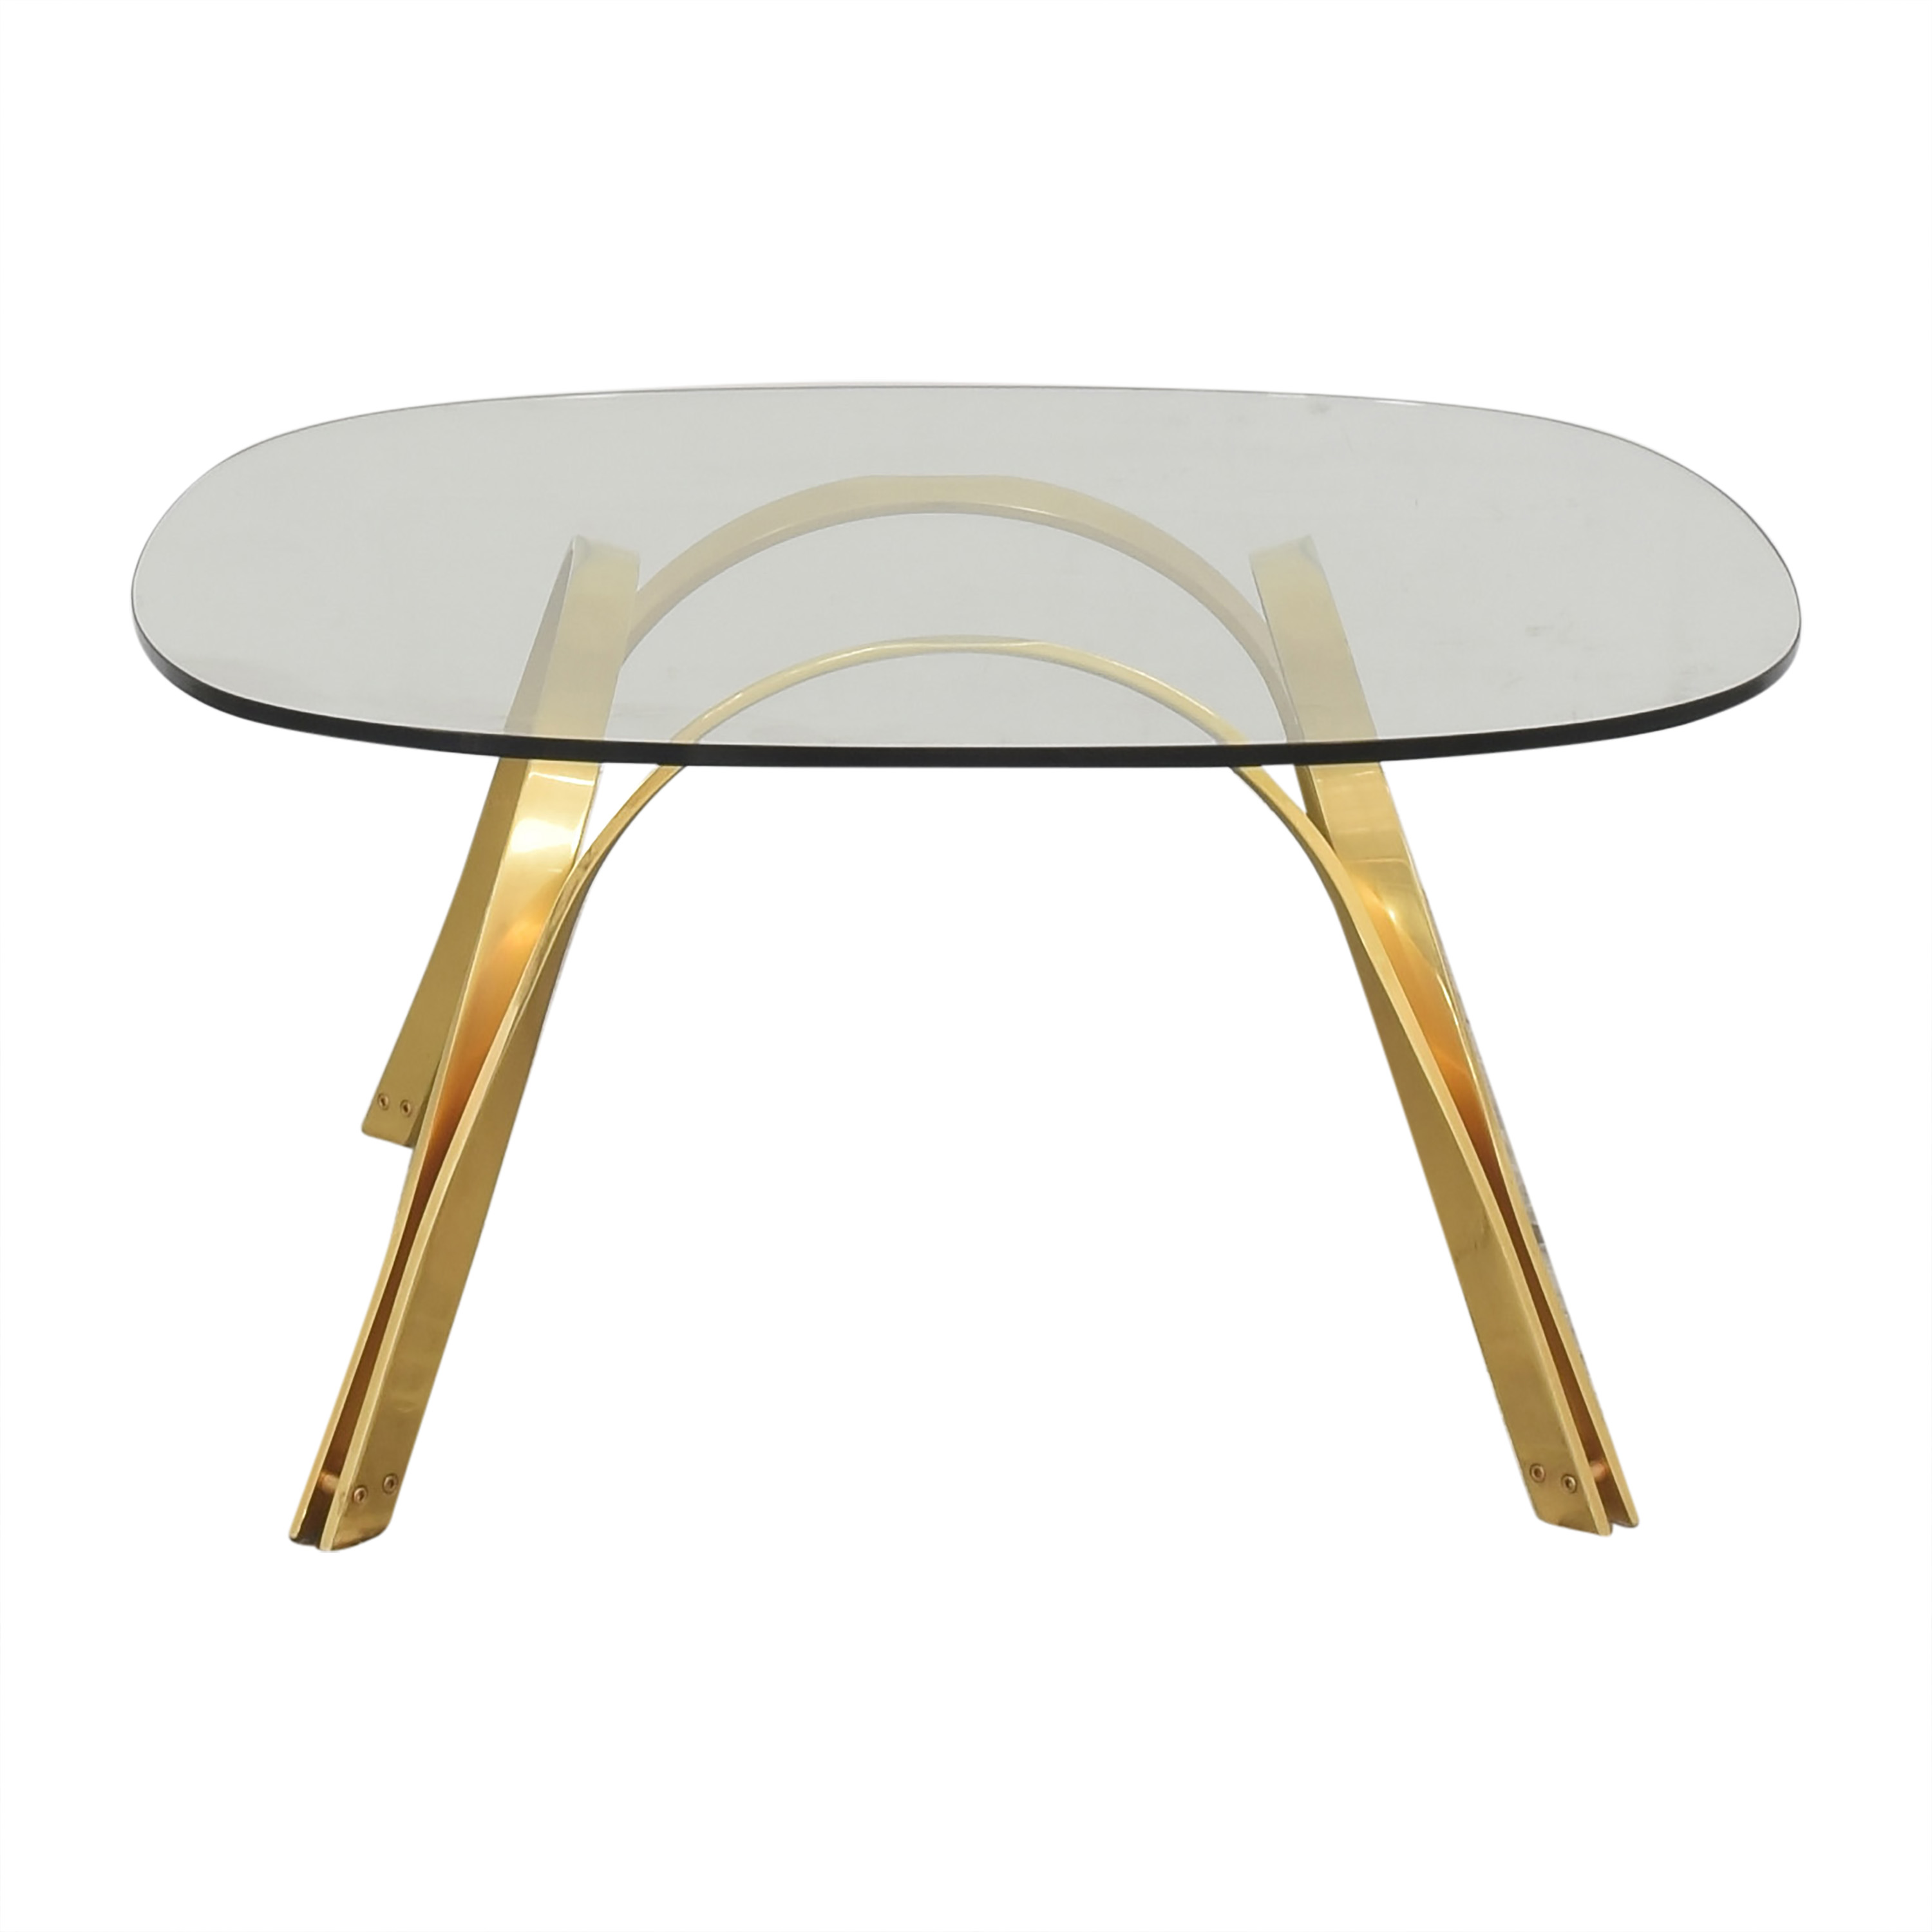 78 off vintage style coffee table tables